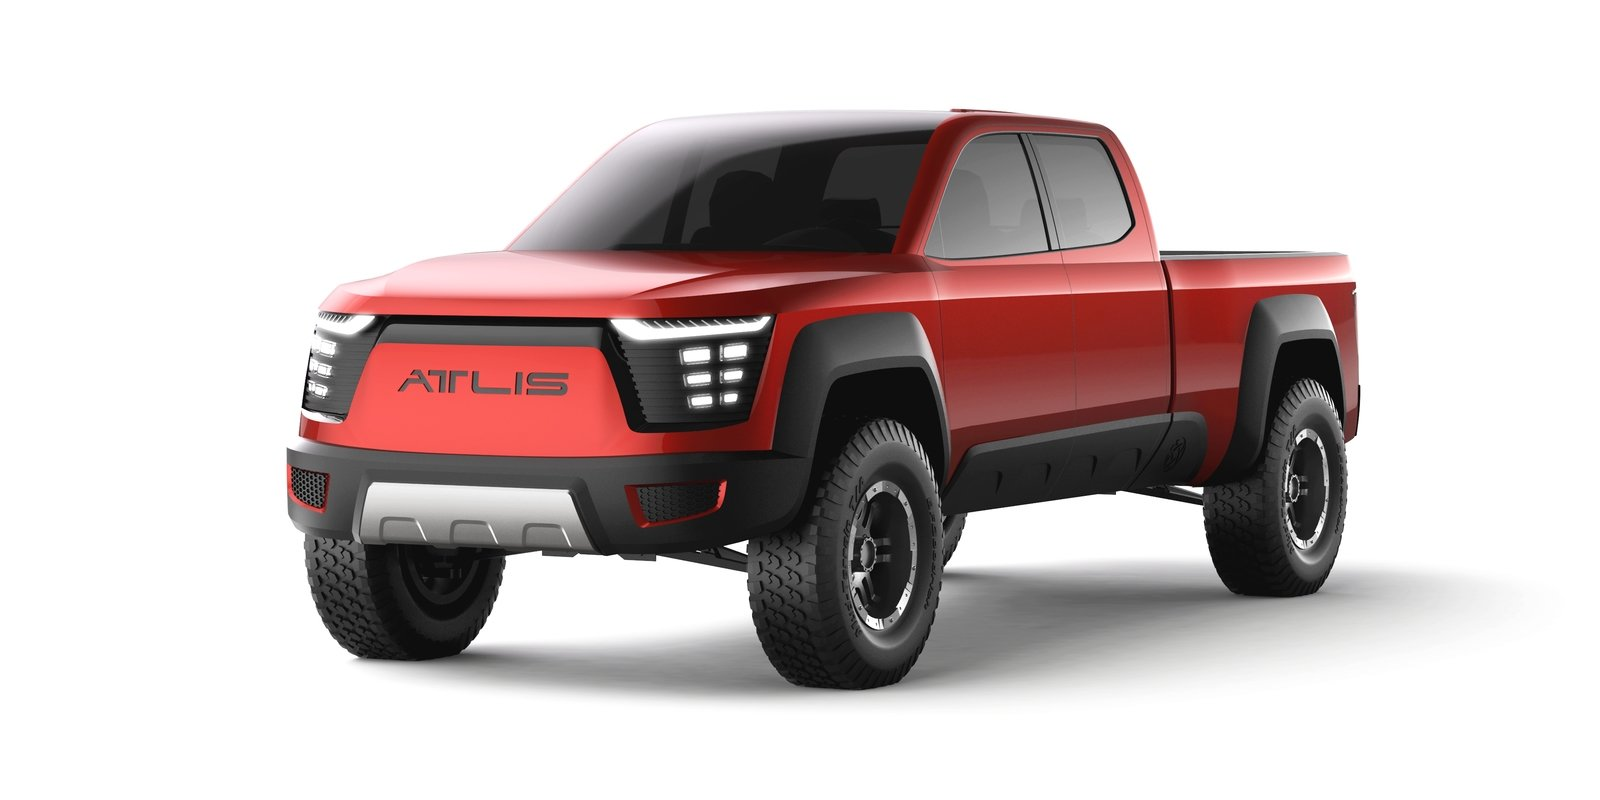 New Electric Pickup Truck From Atlis Motor Vehicles Will ...